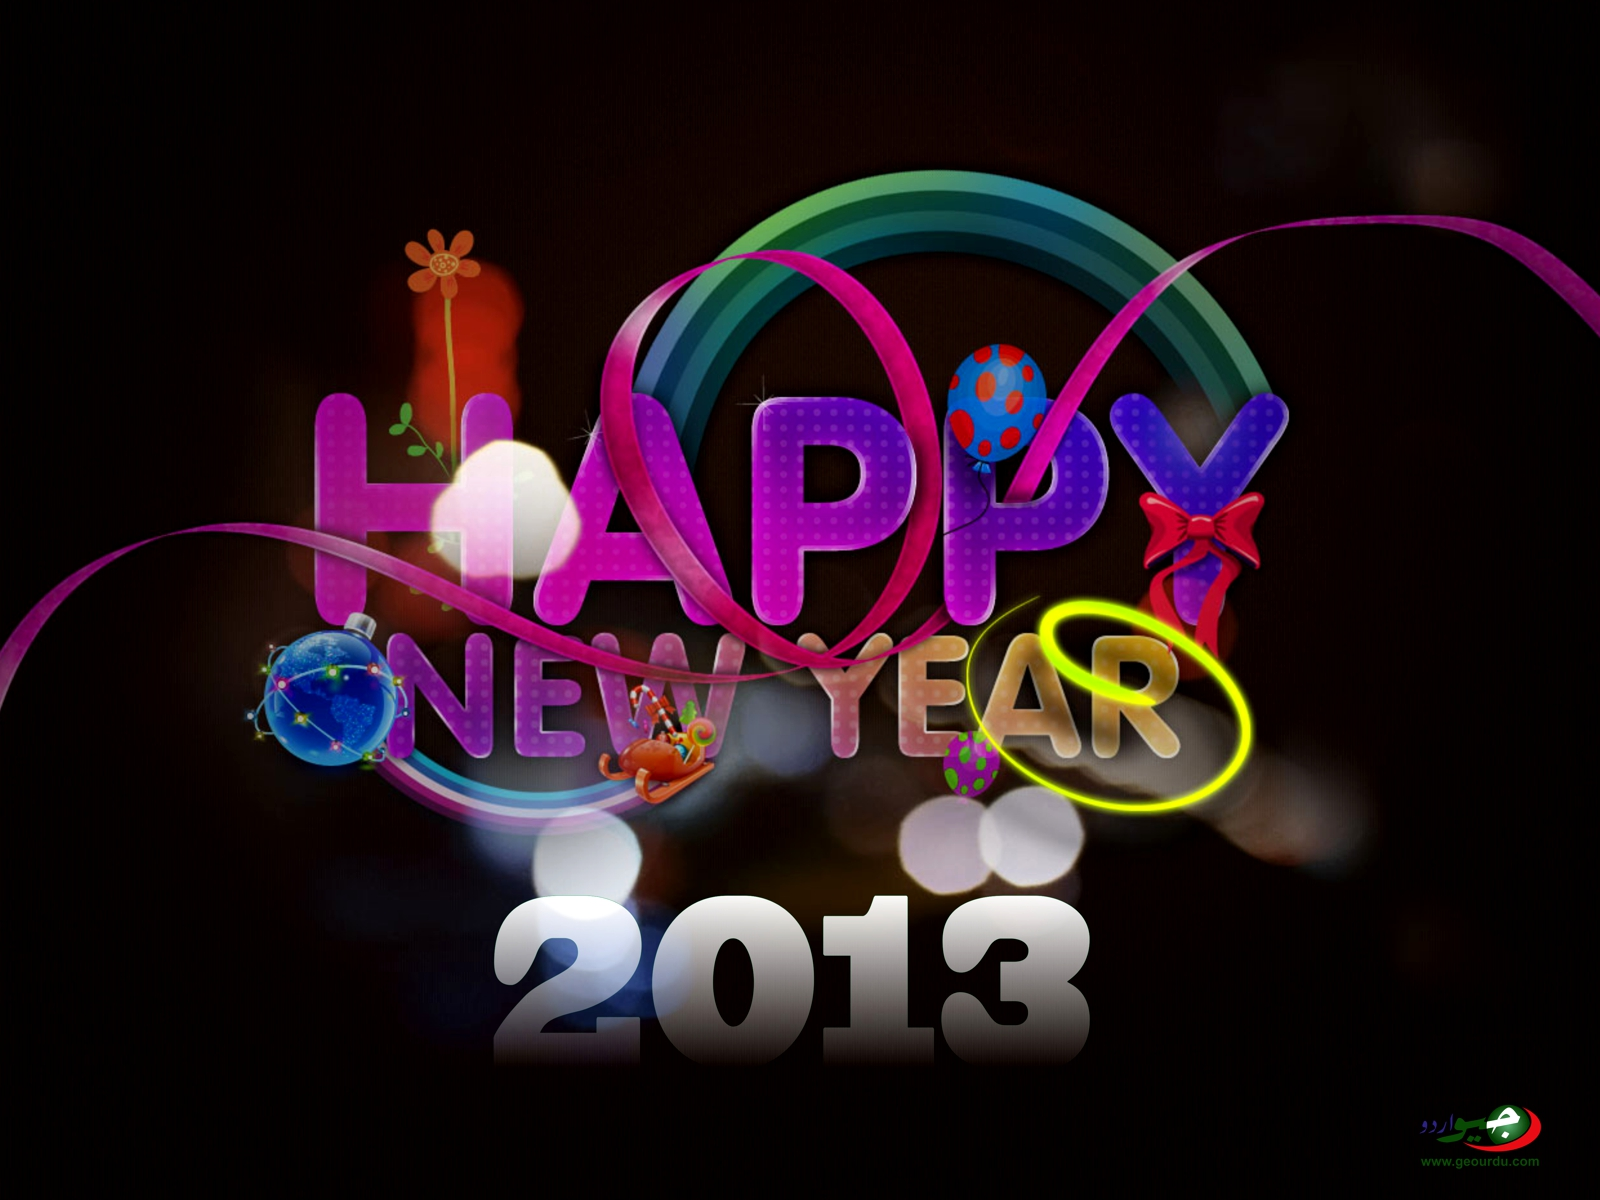 New Year Wallpapers and Images Free Download Happy New Year Wallpaper